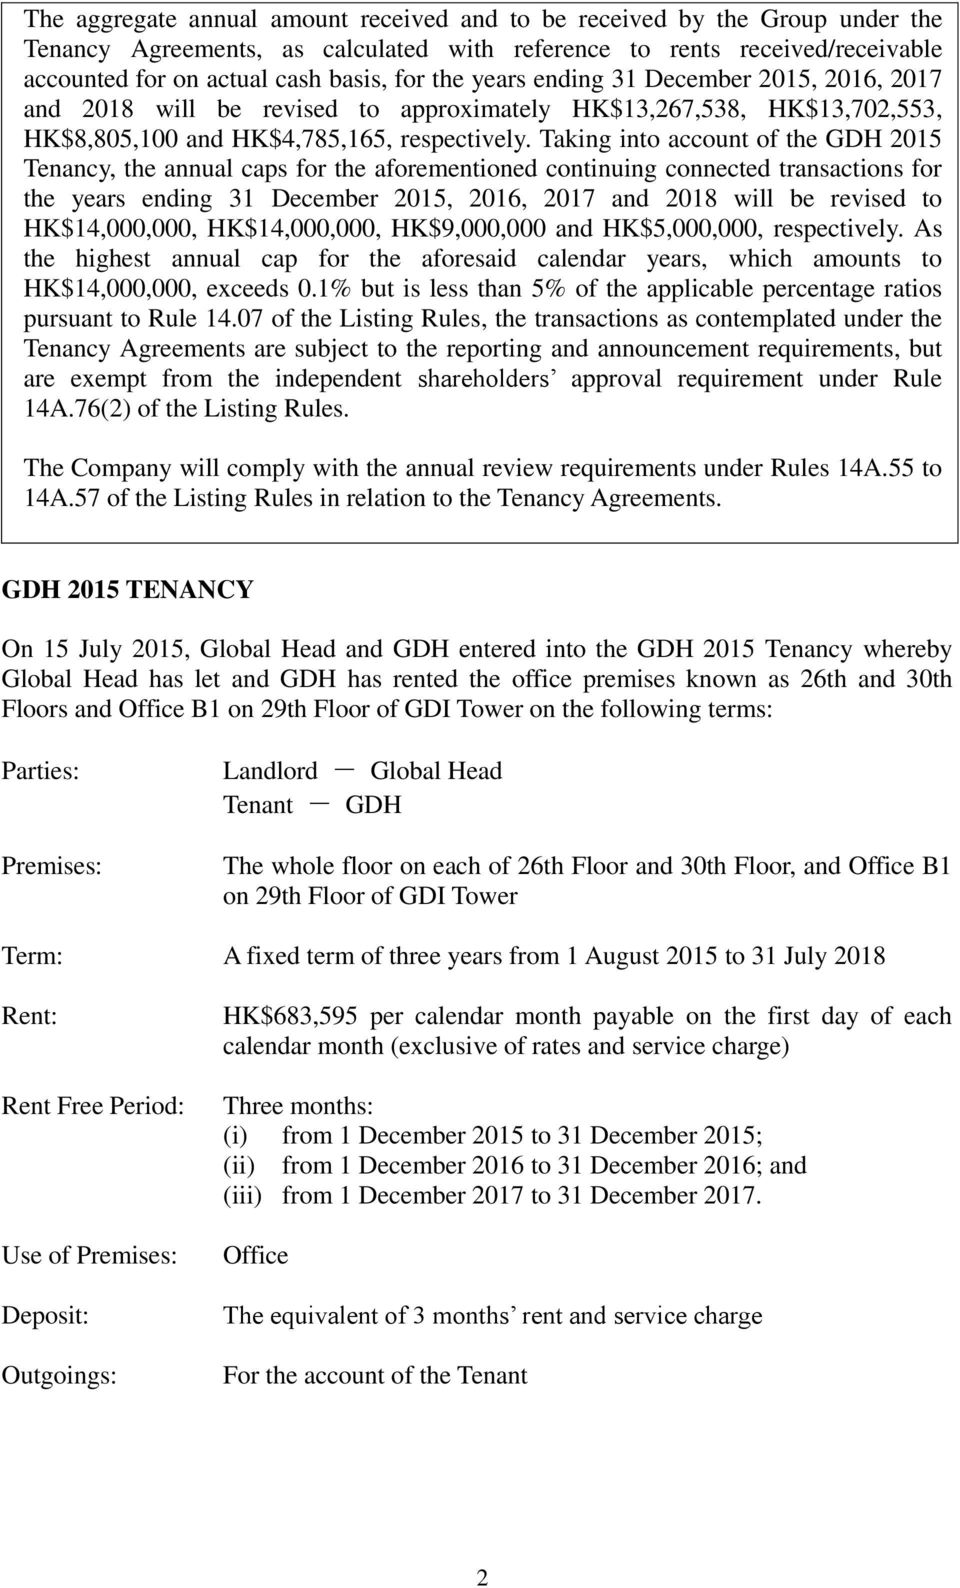 Taking into account of the GDH 2015 Tenancy, the annual caps for the aforementioned continuing connected transactions for the years ending 31 December 2015, 2016, 2017 and 2018 will be revised to